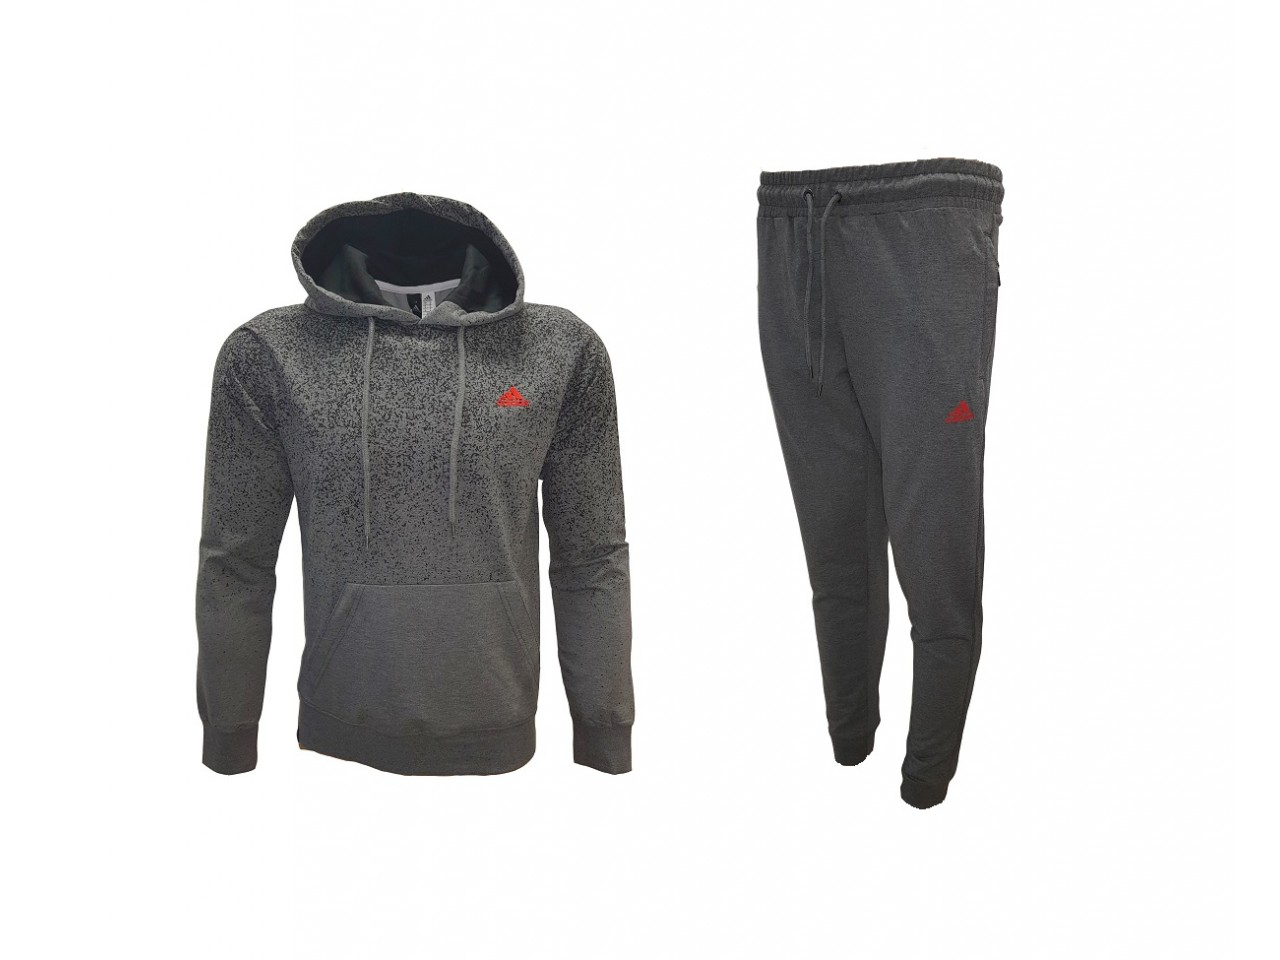 Adidas Points Sweatshirt + Pants Dark Grey Red